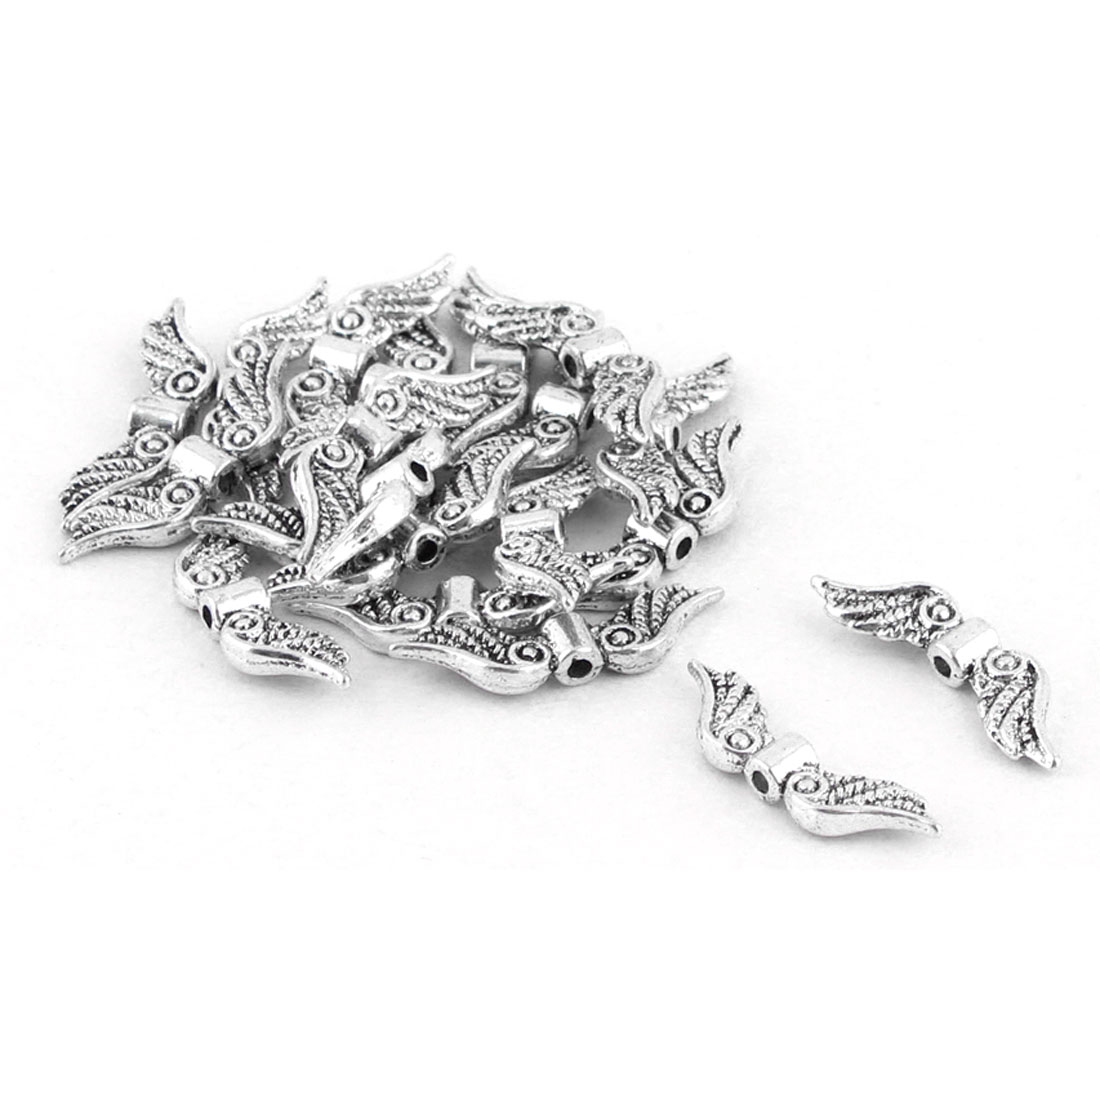 Plastic Wings Shape DIY Bracelet Decor Making Beads Silver Tone 20pcs